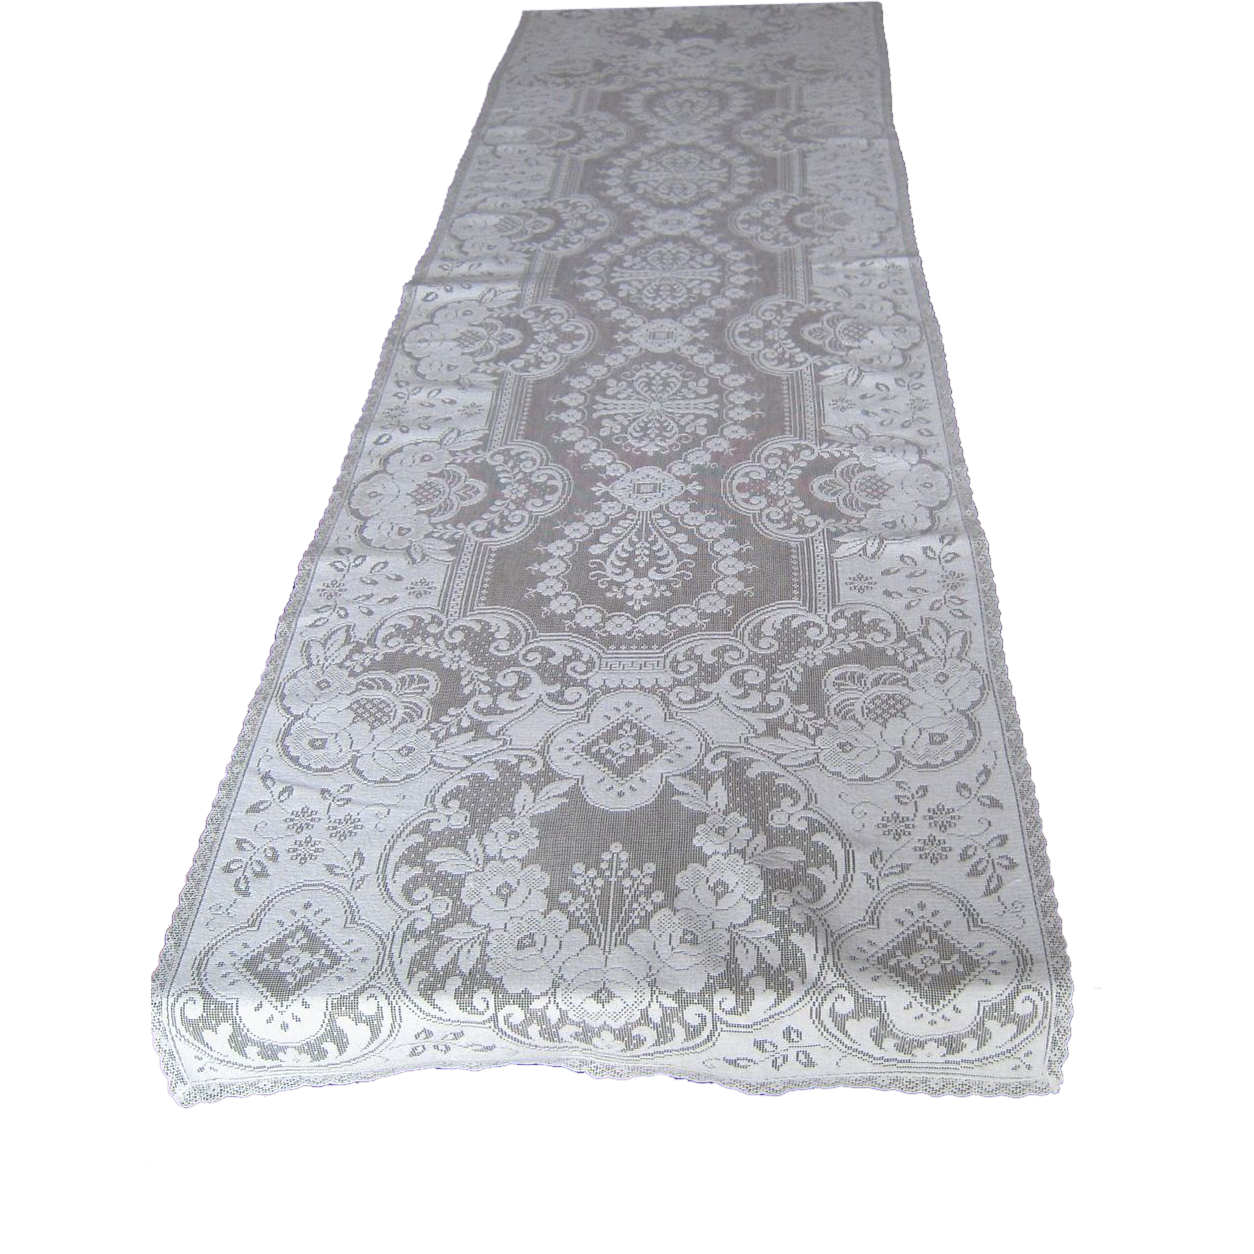 BOXAN 30x Inch White Classy Lace Table Runner/Overlay with Rose Vintage Embroidered, Rustic Boho Wedding Reception Table Decor, Fall Thanksgiving Christmas Baby & .